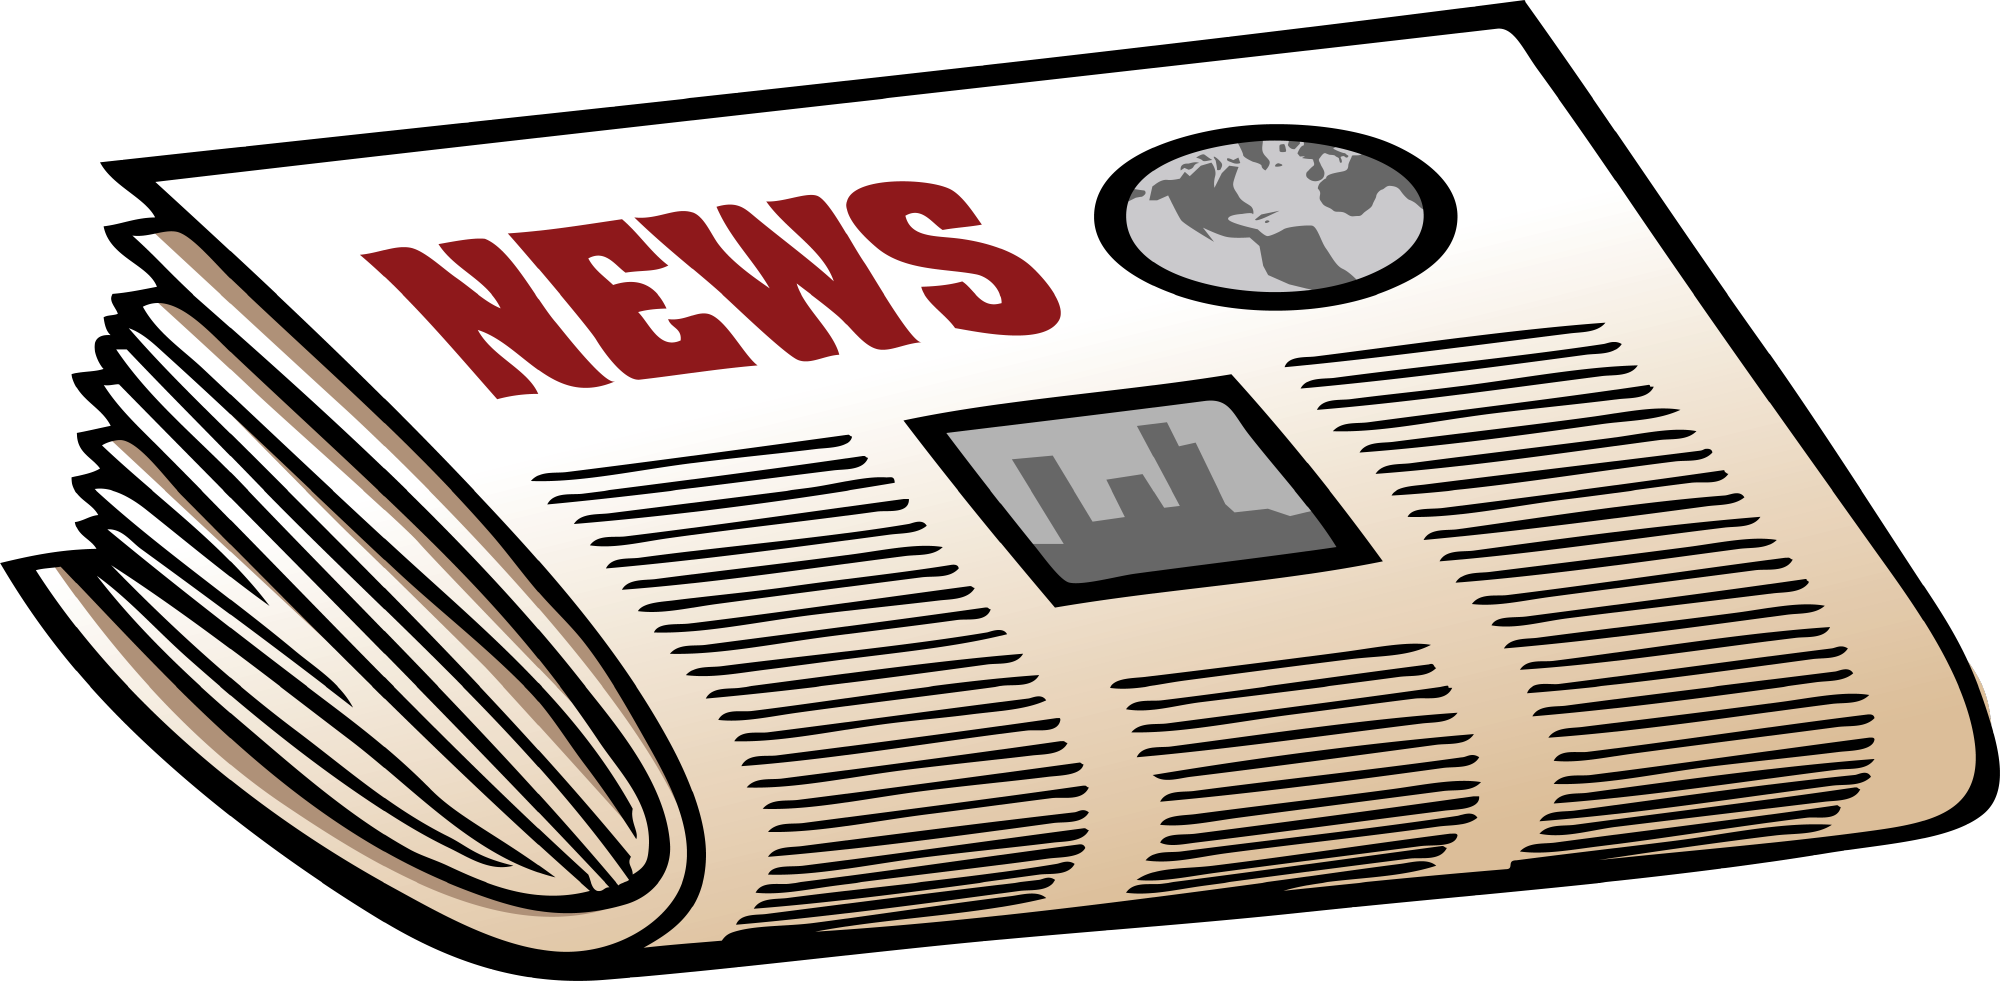 Newspaper clipart free clip art images